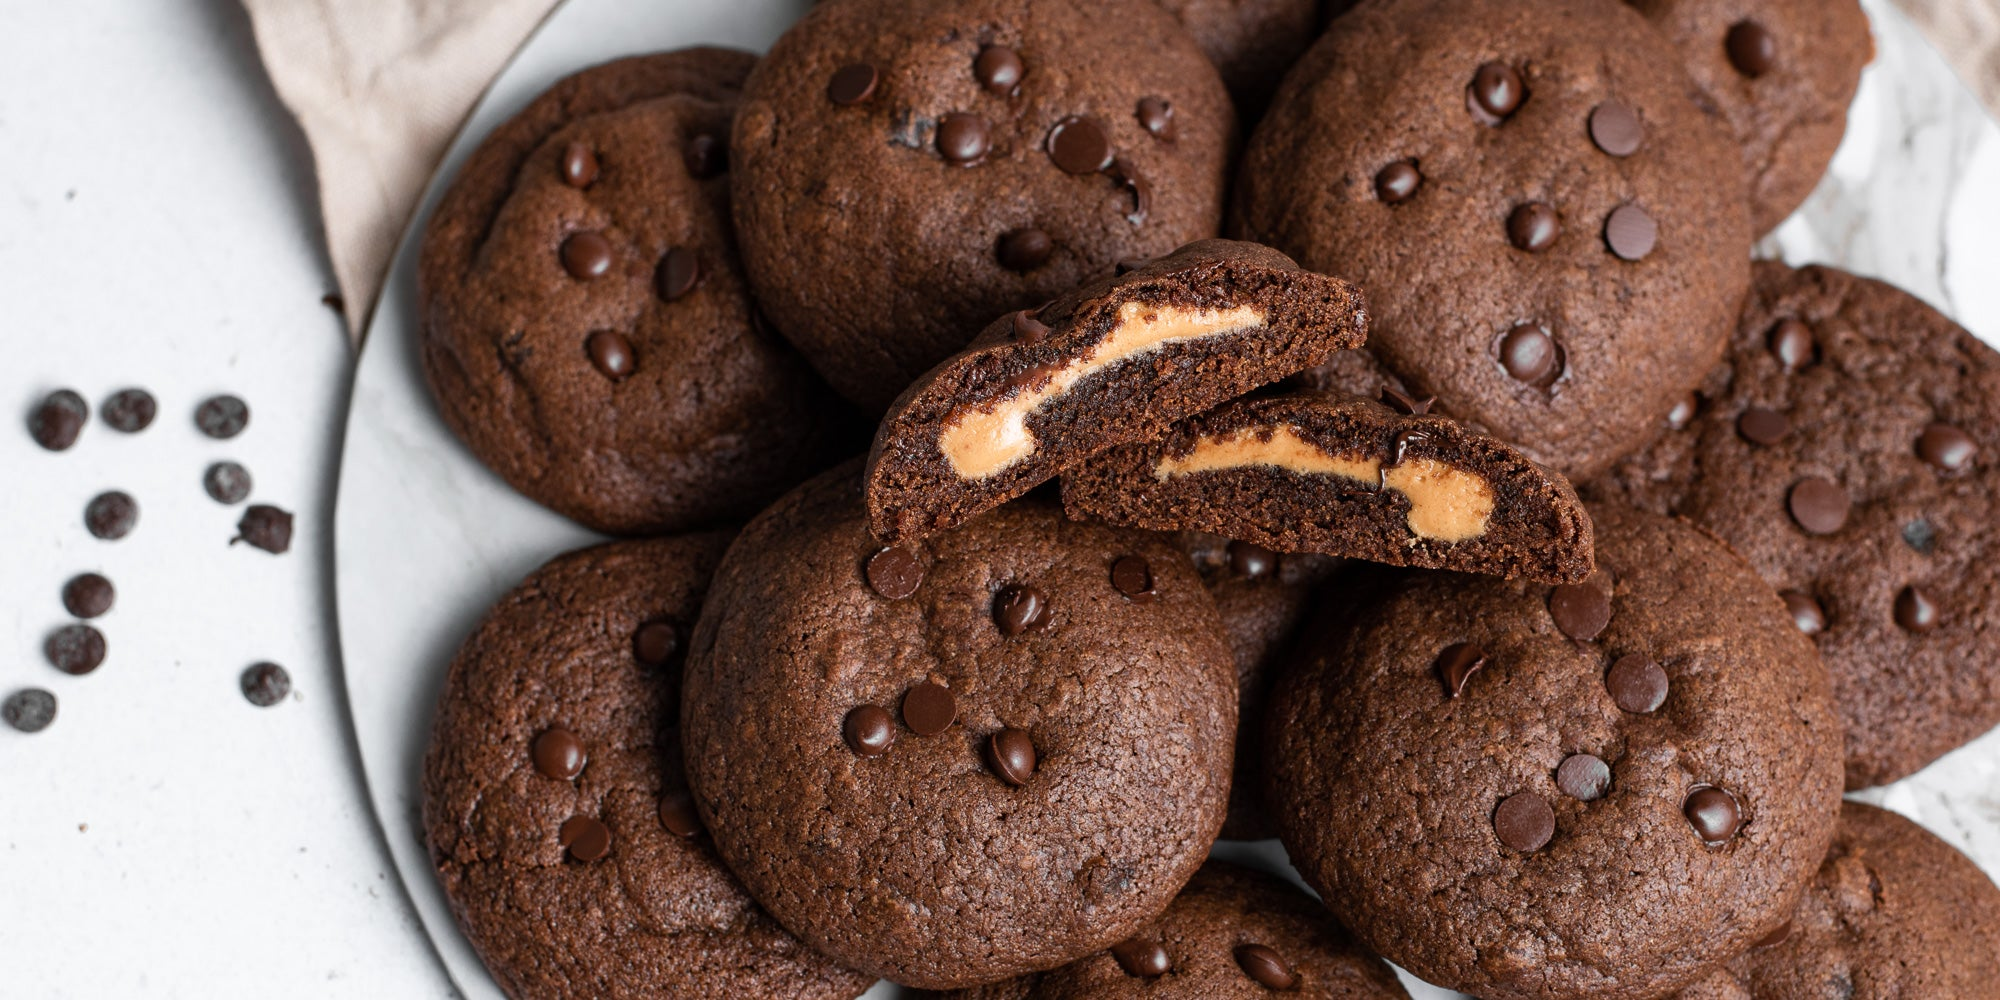 Close up Chocolate & Peanut Butter Stuffed Cookies with a cookie sliced in half.